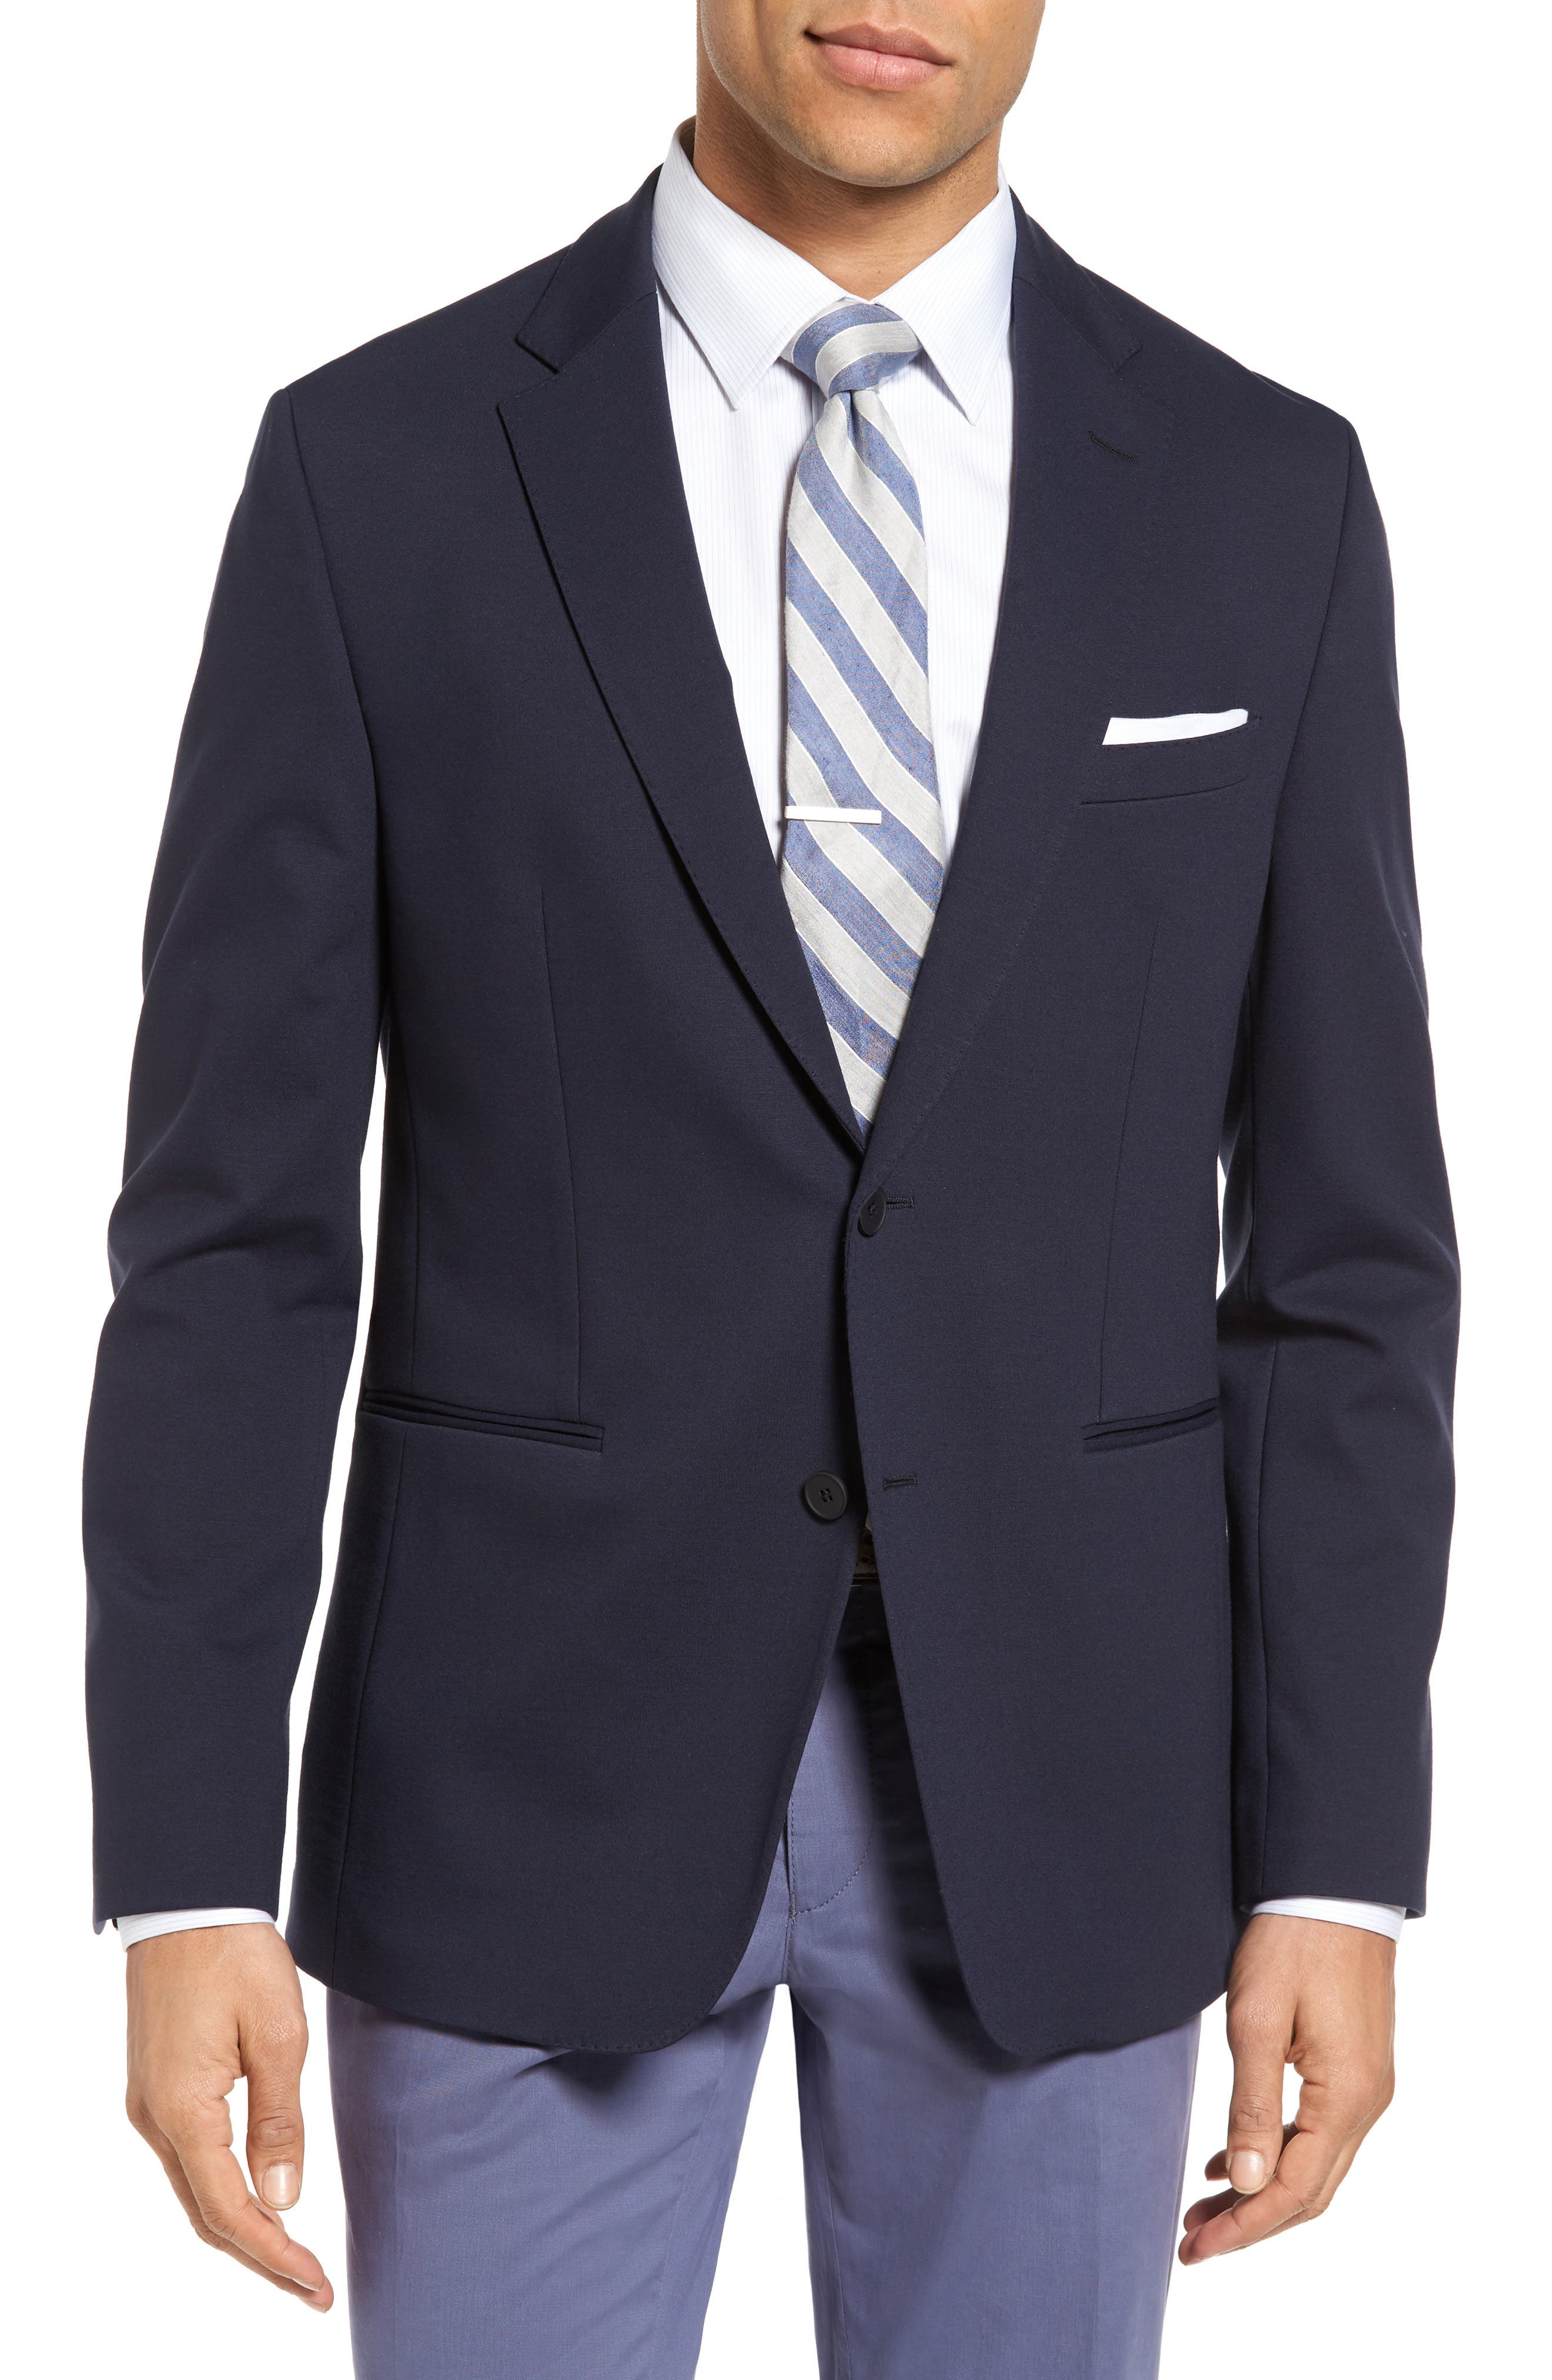 Alternate Image 1 Selected - BOSS Norwin Trim Fit Stretch Blazer